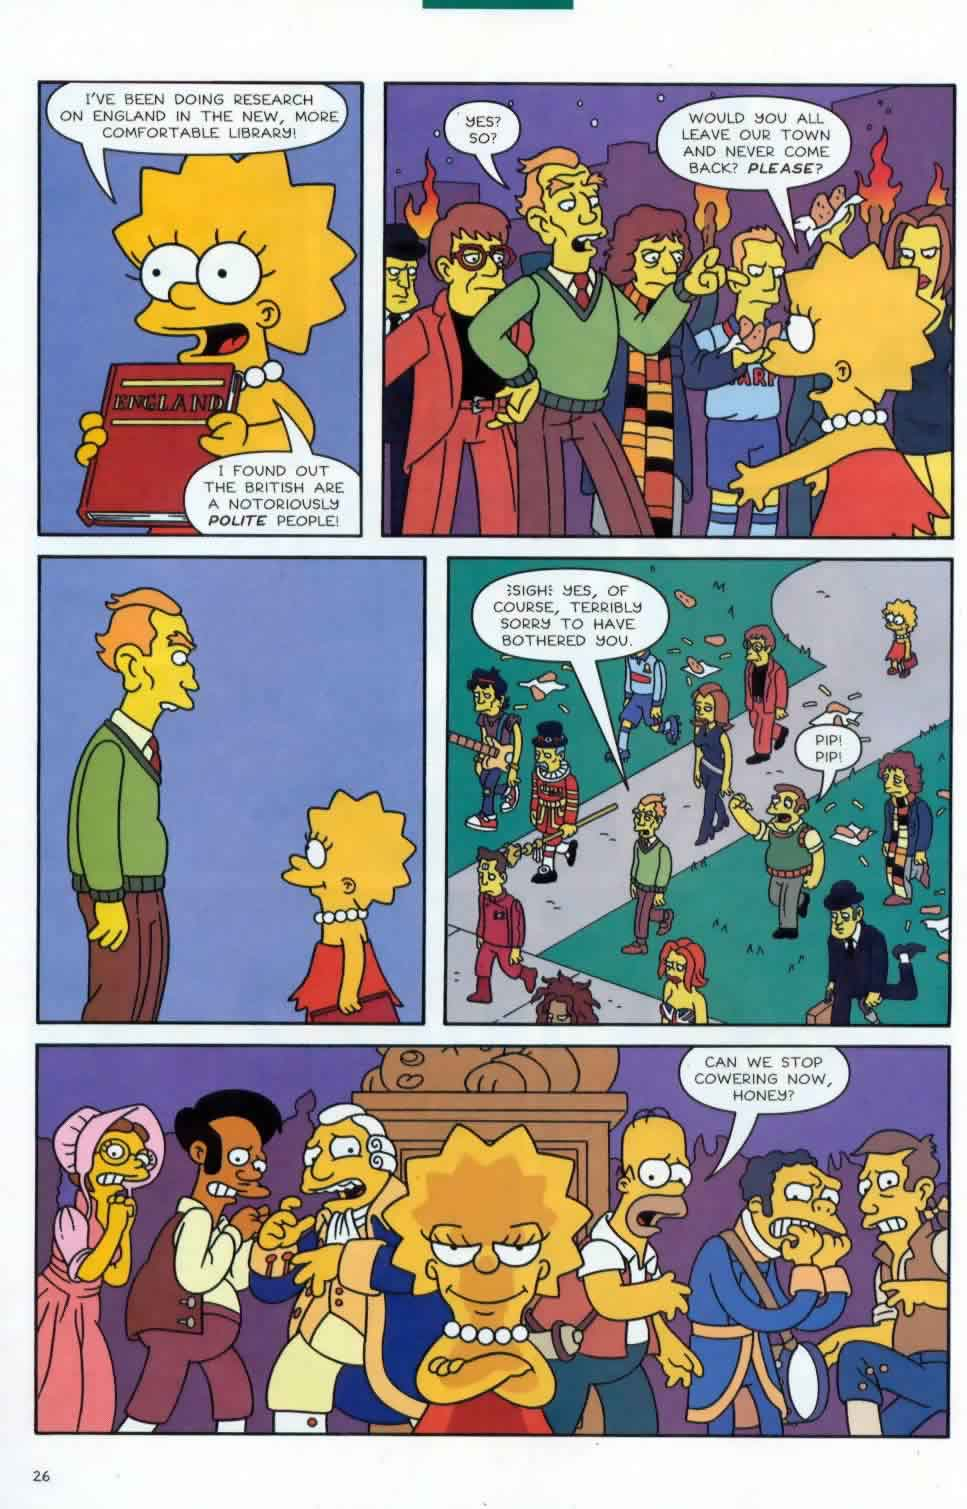 22 Short Films About Springfield Season 7 Episode 21 Simpsons World On Fxx